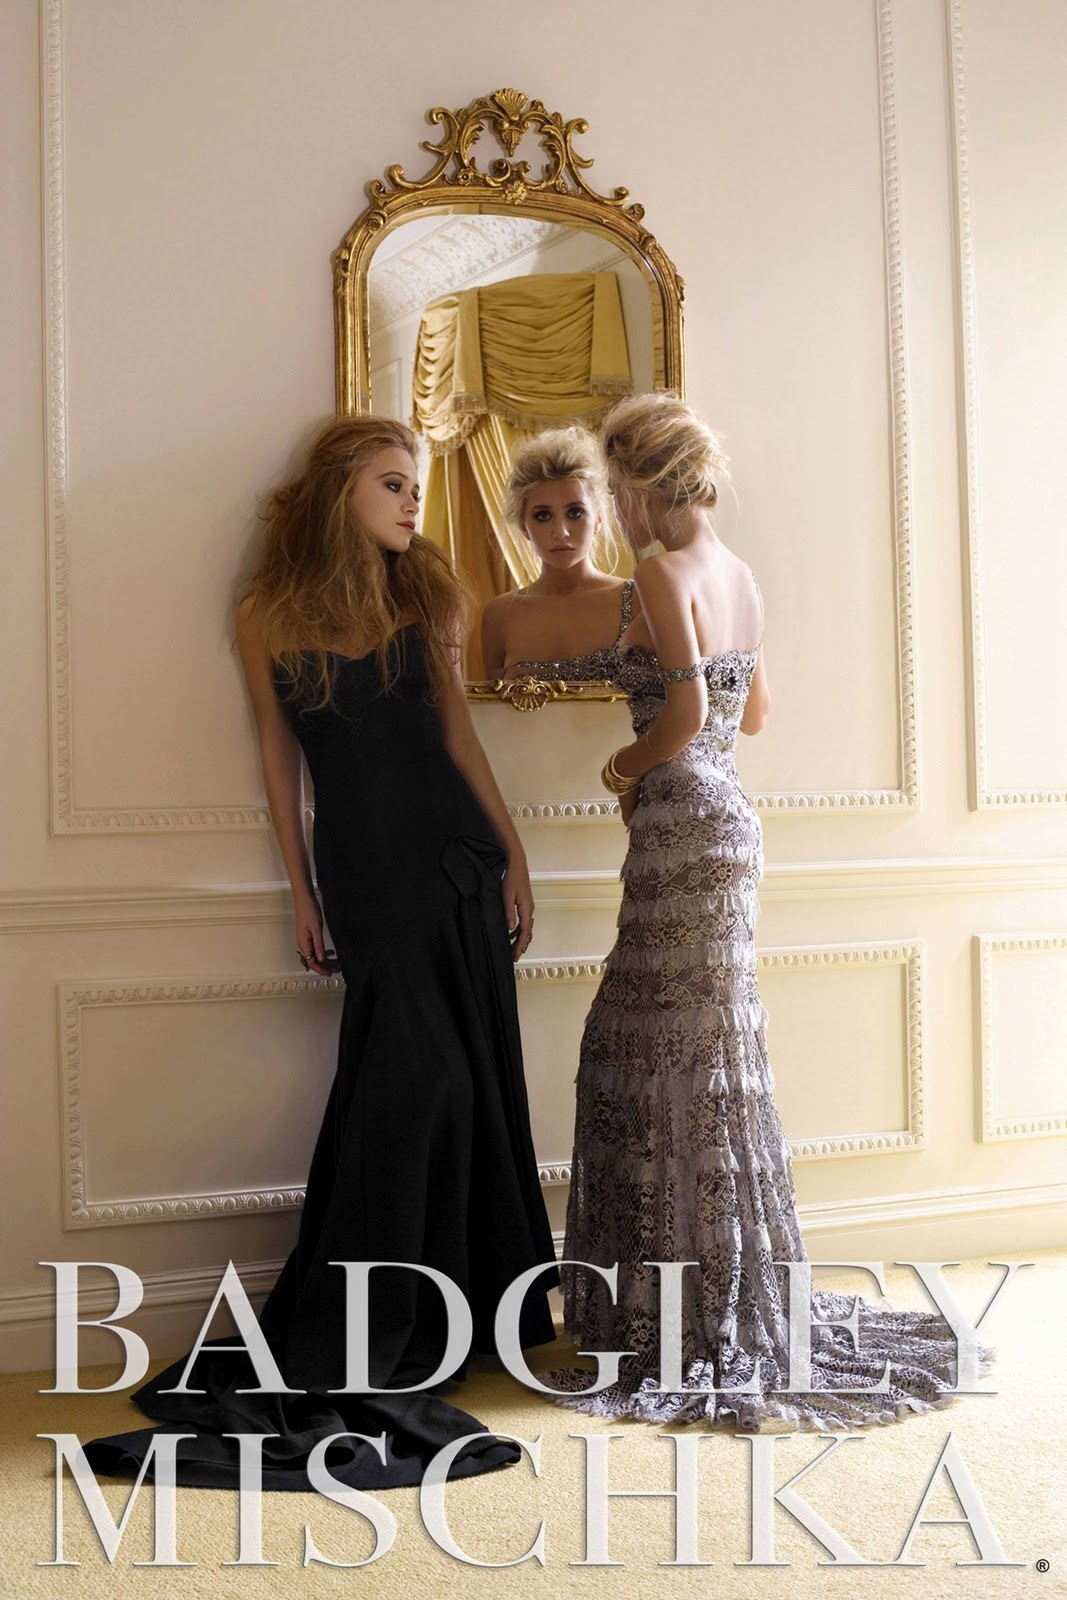 http://2.bp.blogspot.com/-yiCpweiRxQ8/Trw6s5BEzOI/AAAAAAAACFE/ru5j3dkPJW0/s1600/mary-kate-ashley-olsen-badgley-mischka-ad-hq-01.jpg